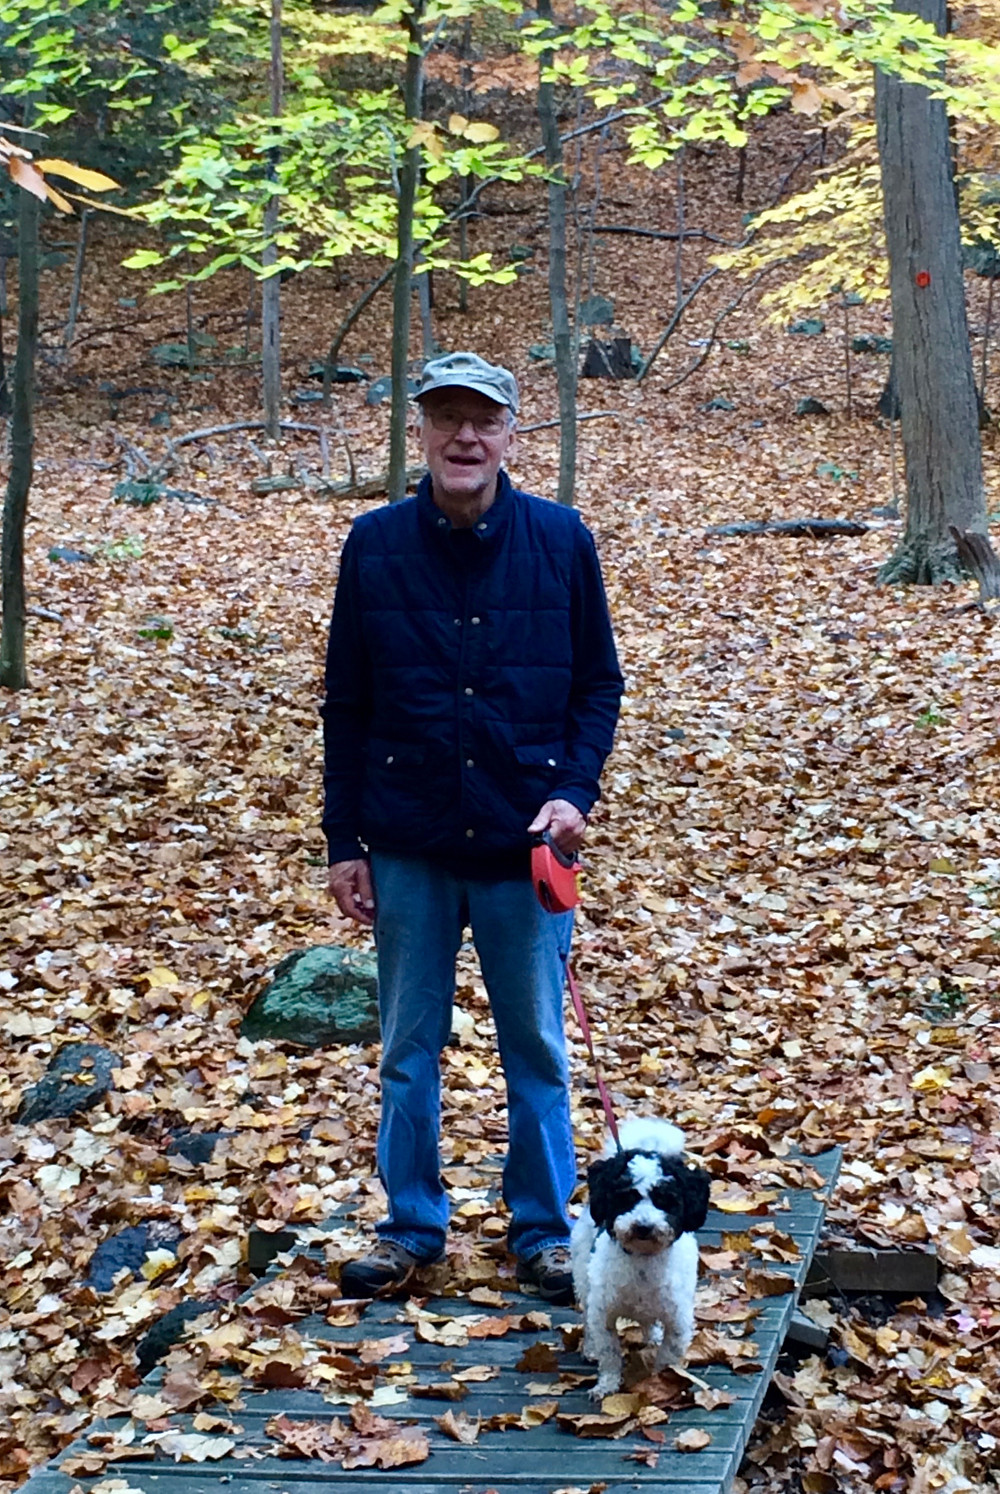 Man for walk with his dog after recovering from knee pain with acupuncture treatments